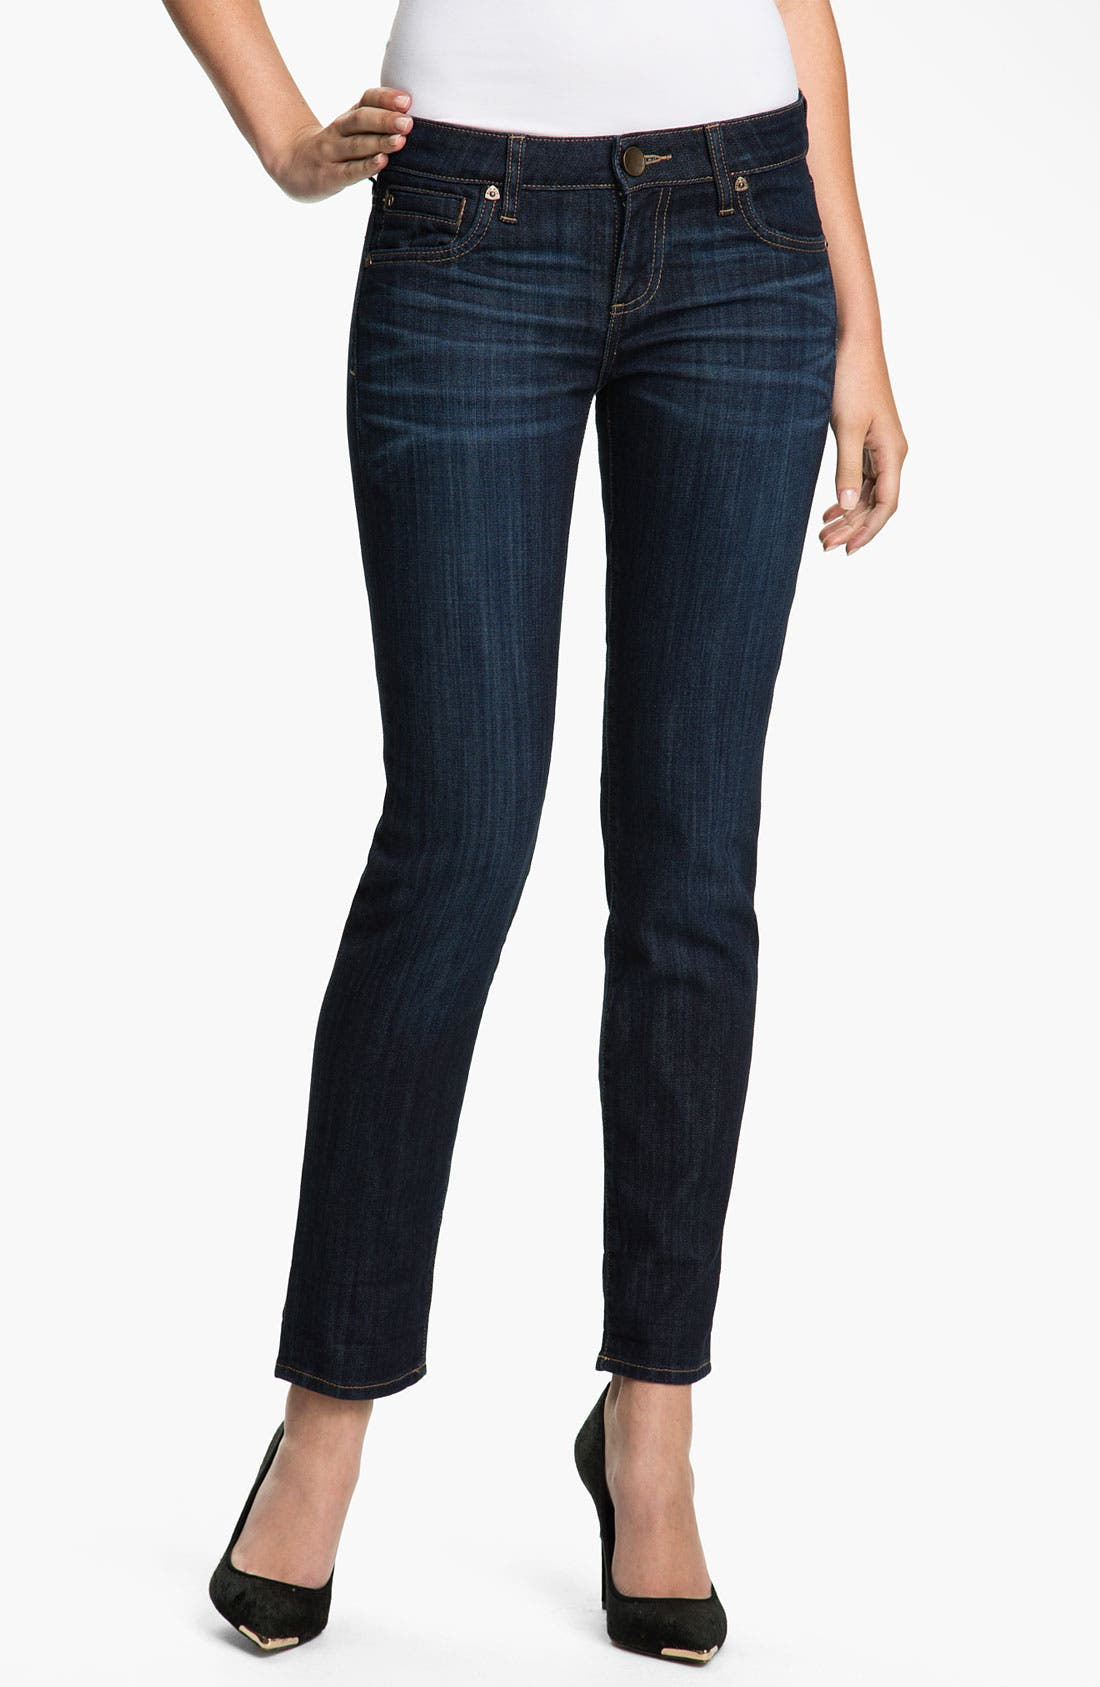 Alternate Image 3  - KUT from the Kloth 'Catherine' Boyfriend Jeans (Petite)